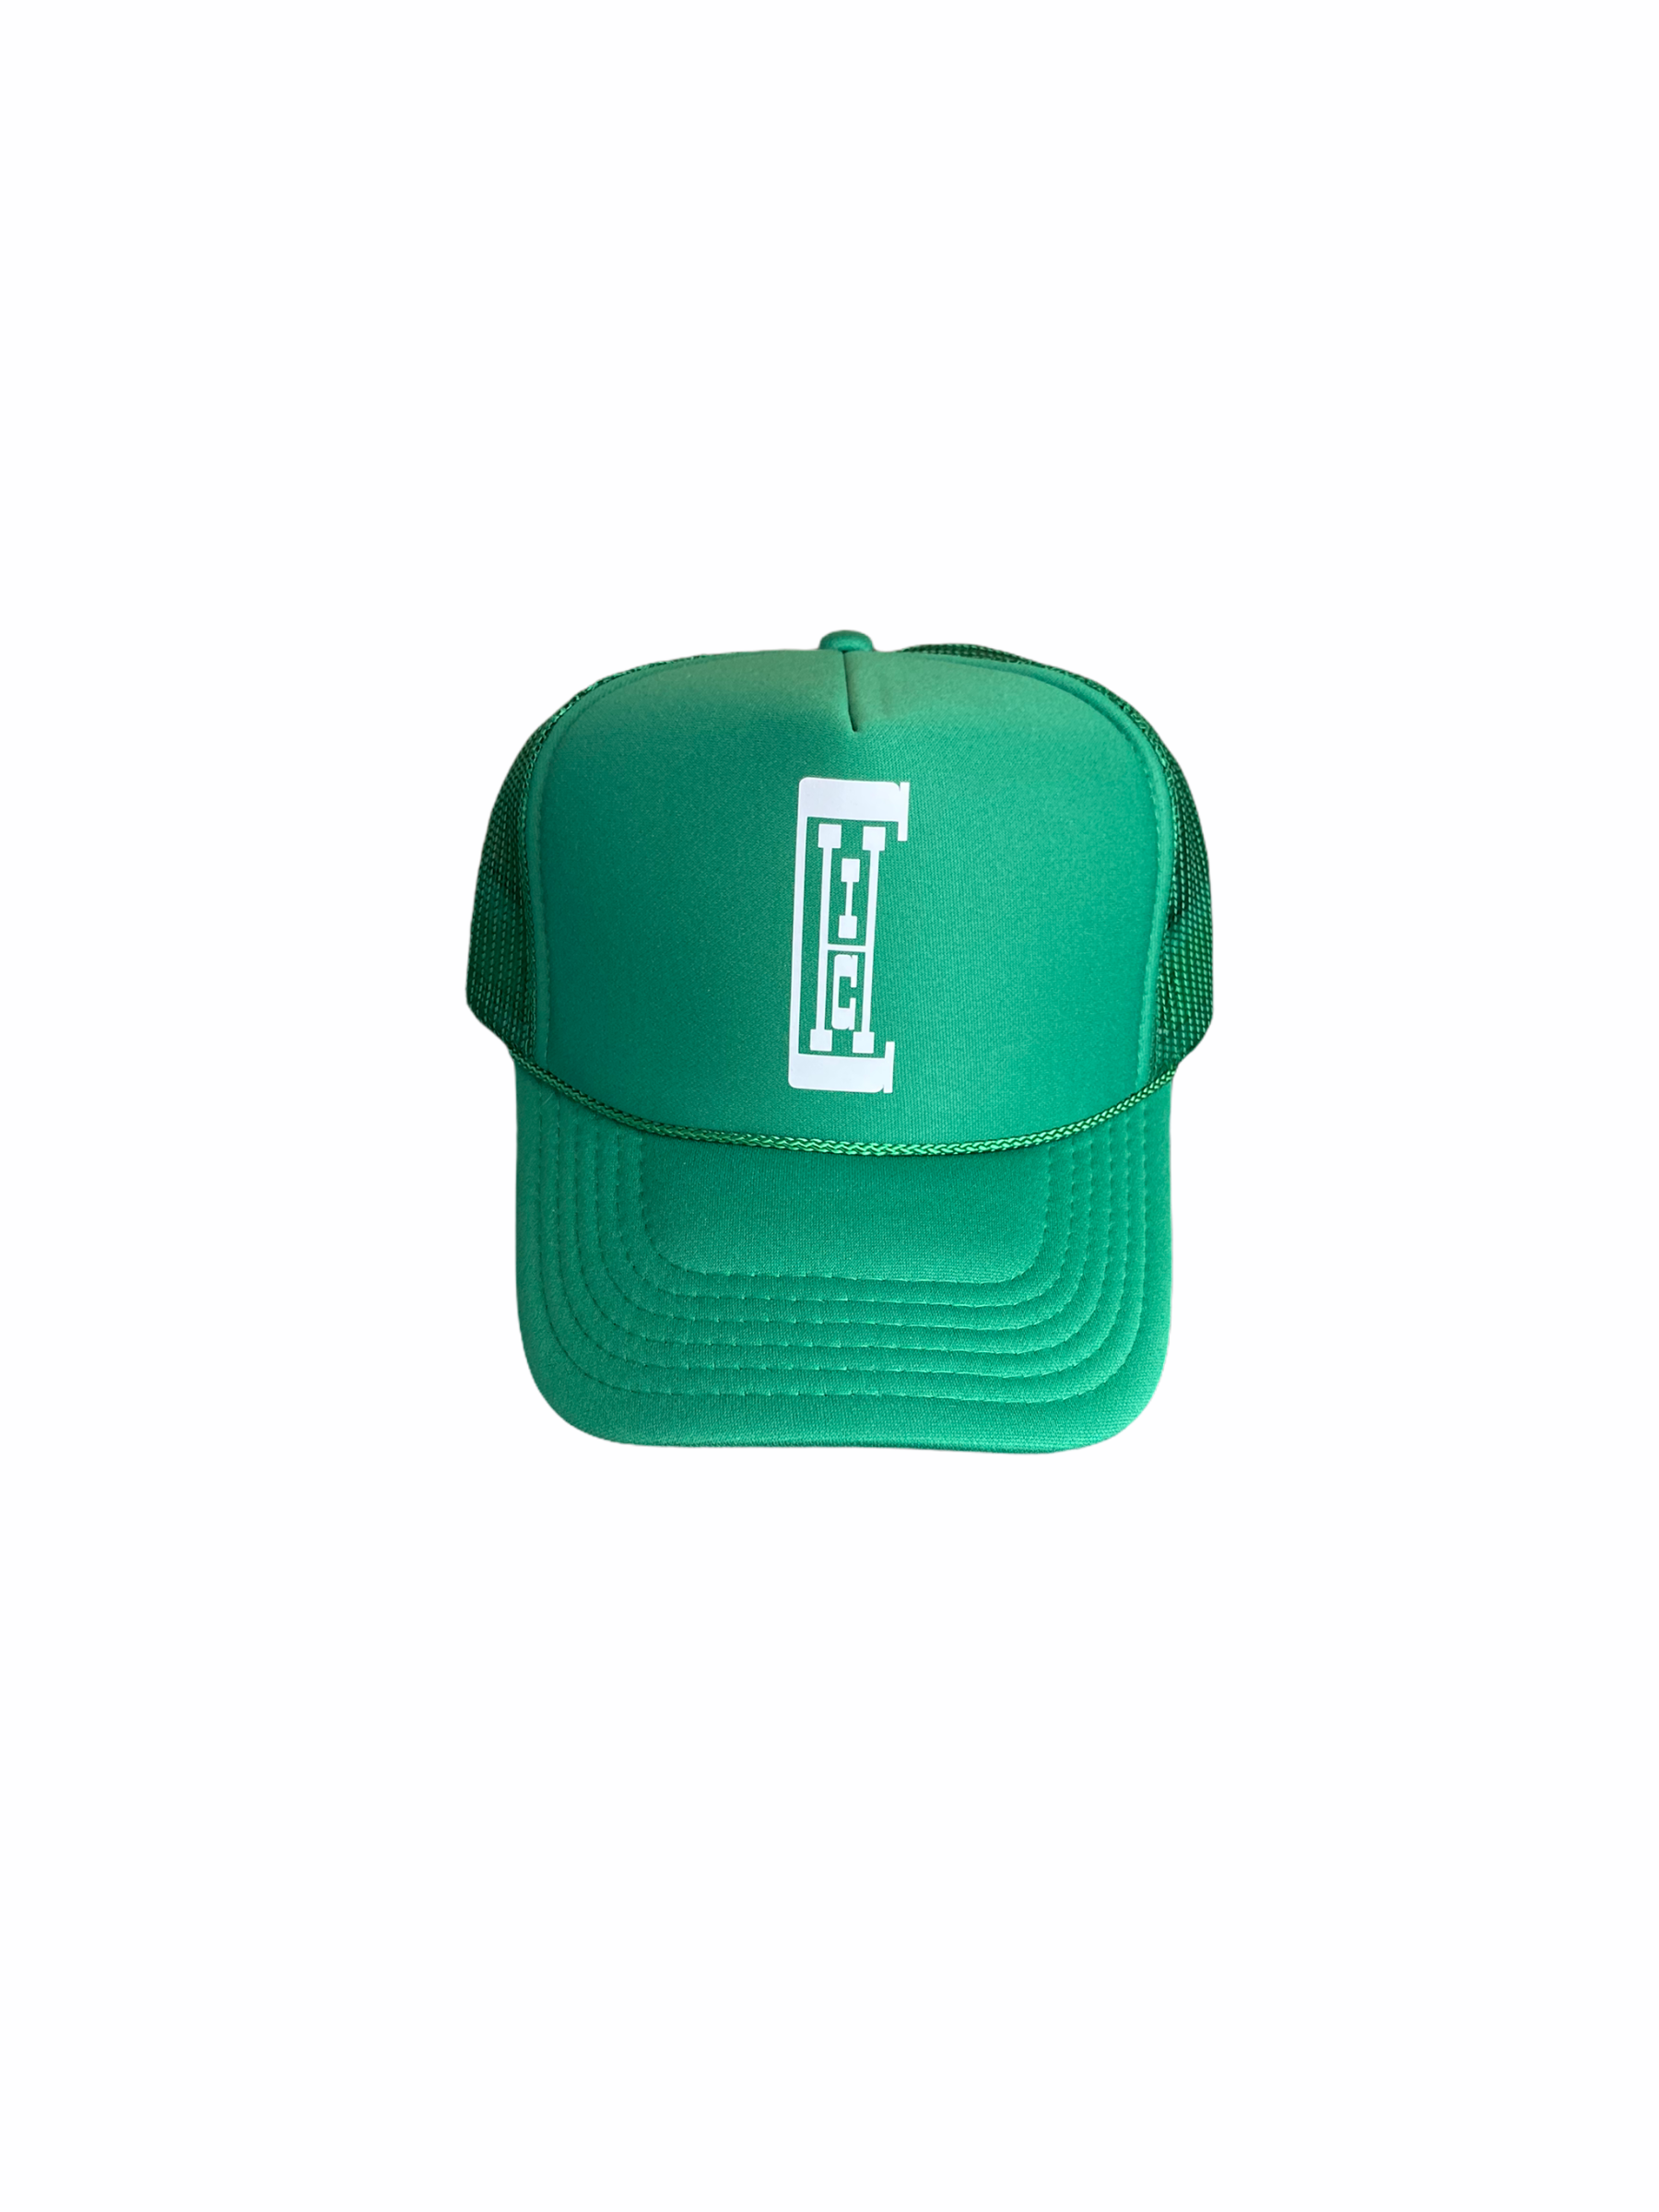 Go Chic Trucker (Green)